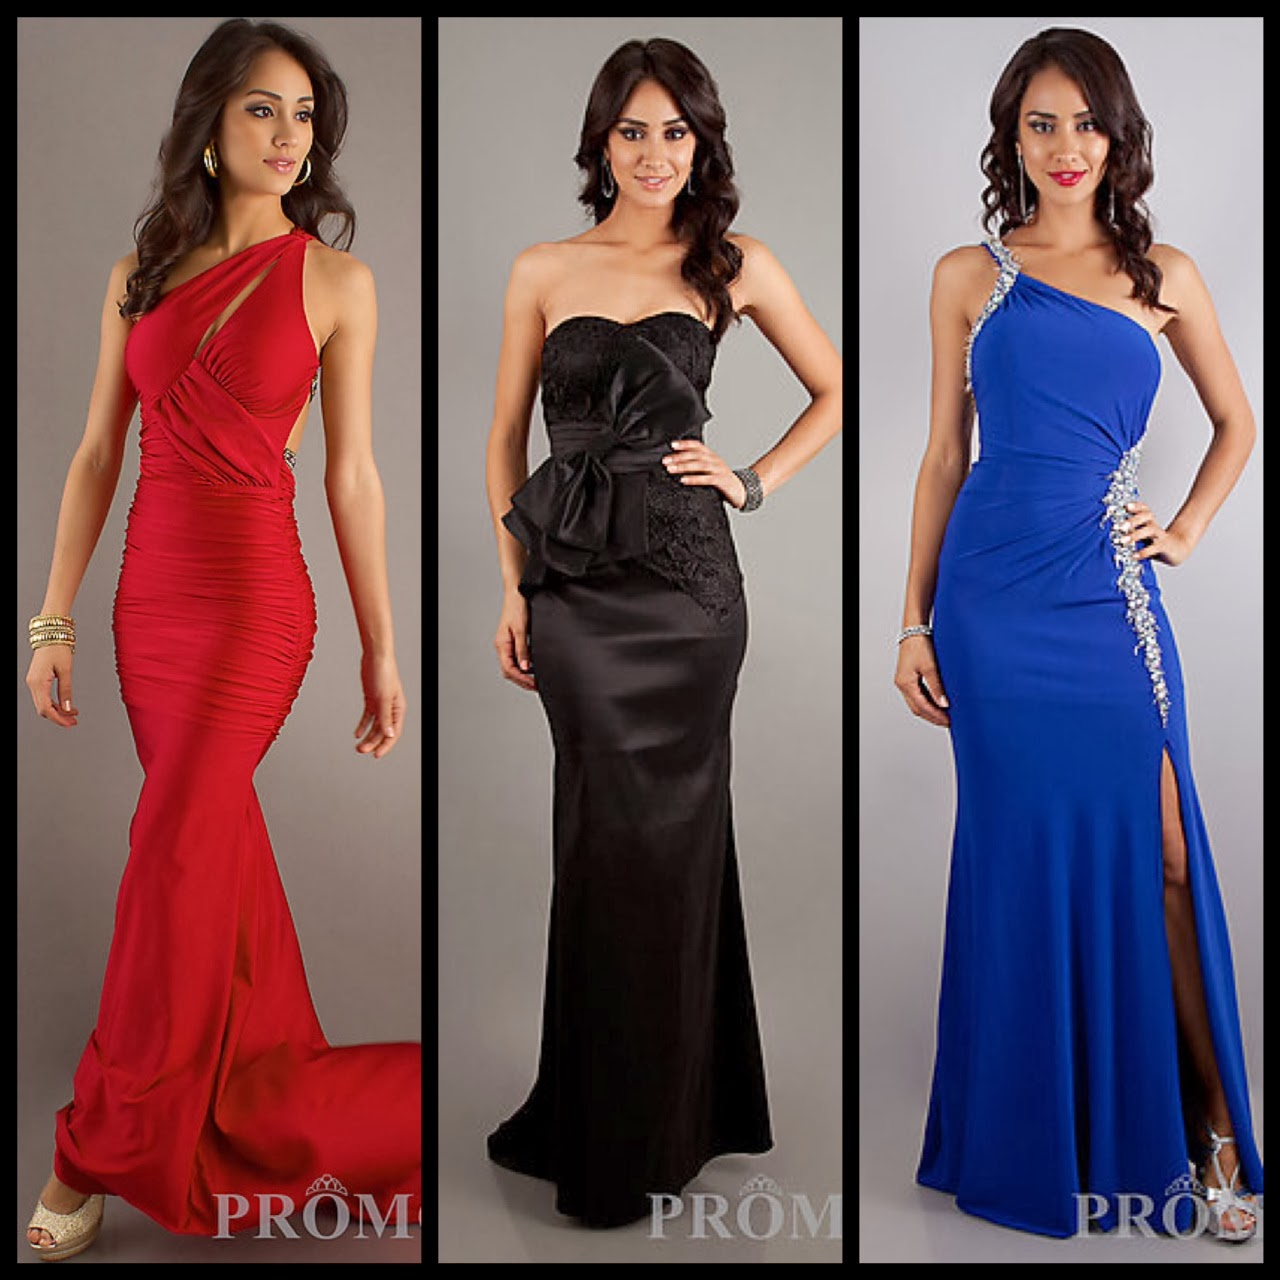 Marine Corps Ball Dresses: Do\'s and Don\'ts. - Je Ne Sais Quoi